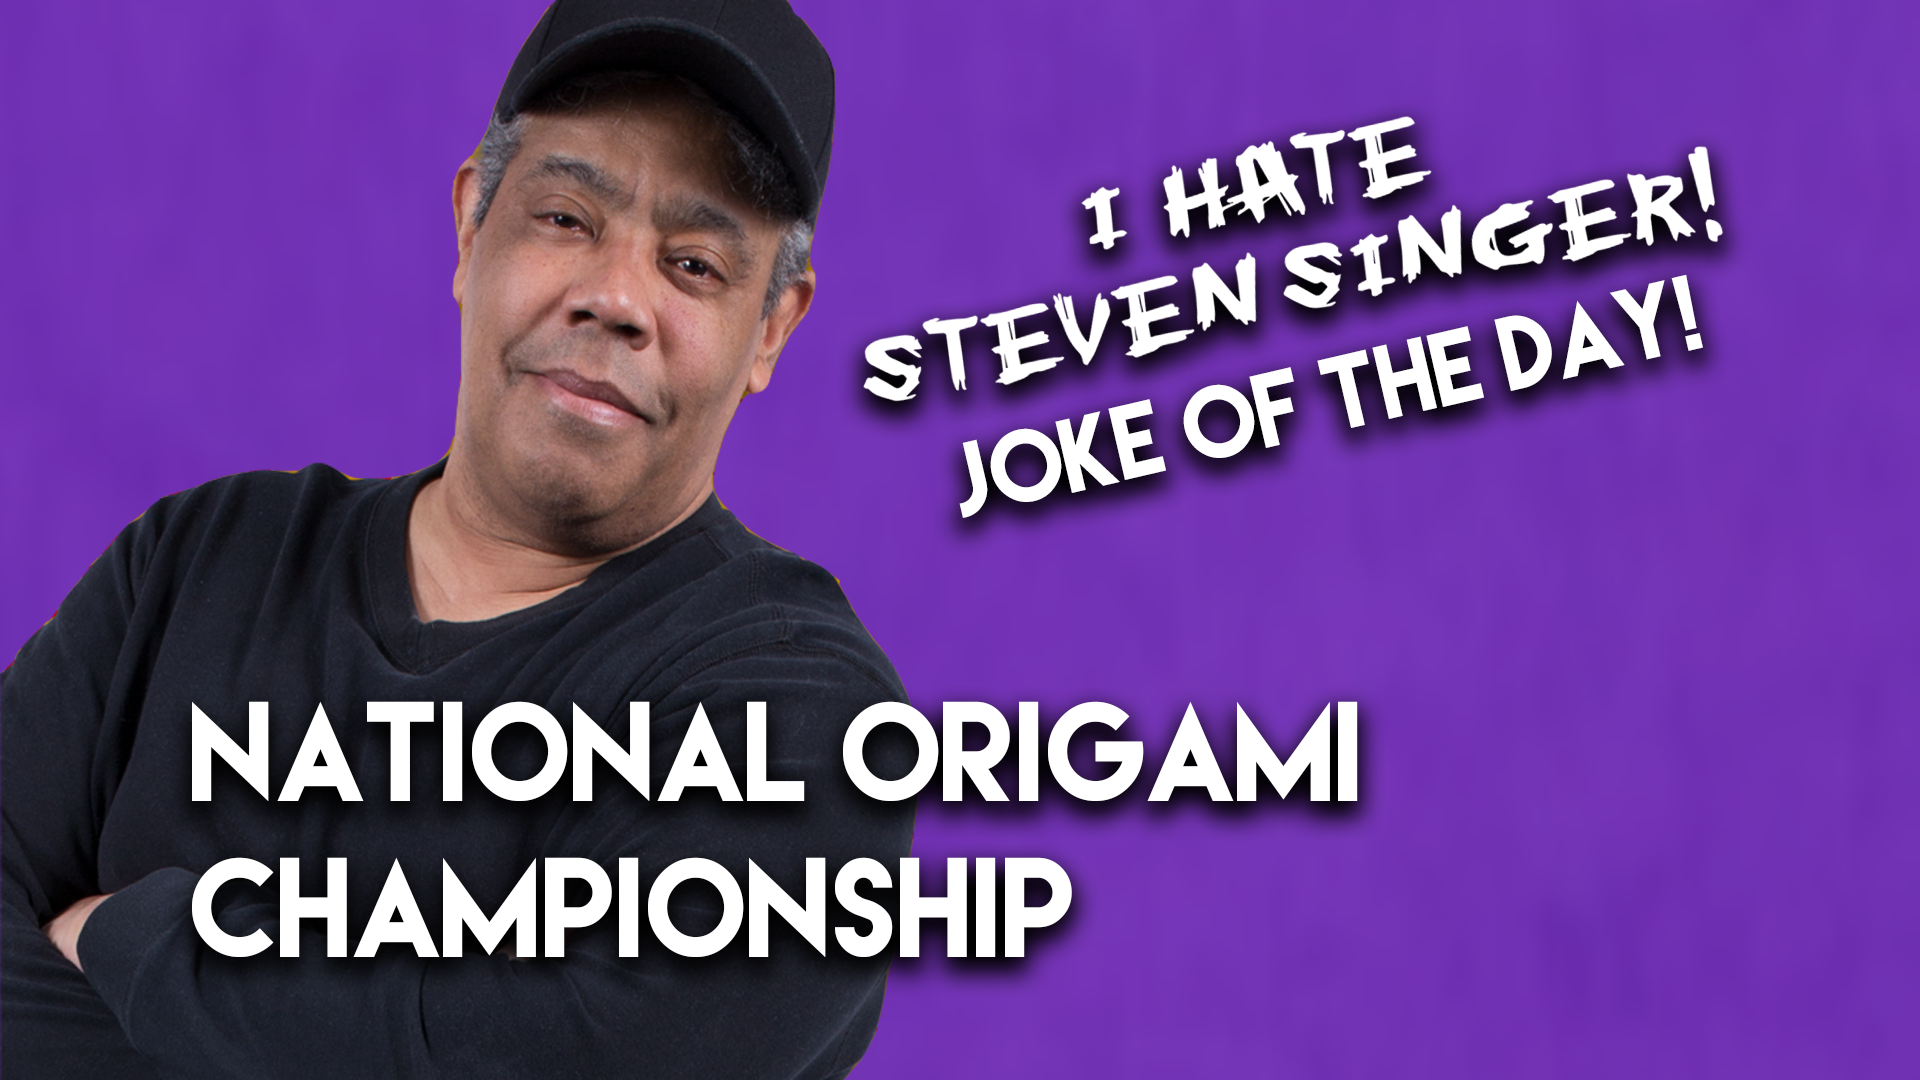 National Origami Championship | The Ace Cosby Joke of the Day Presented by Steven Singer Jewelers